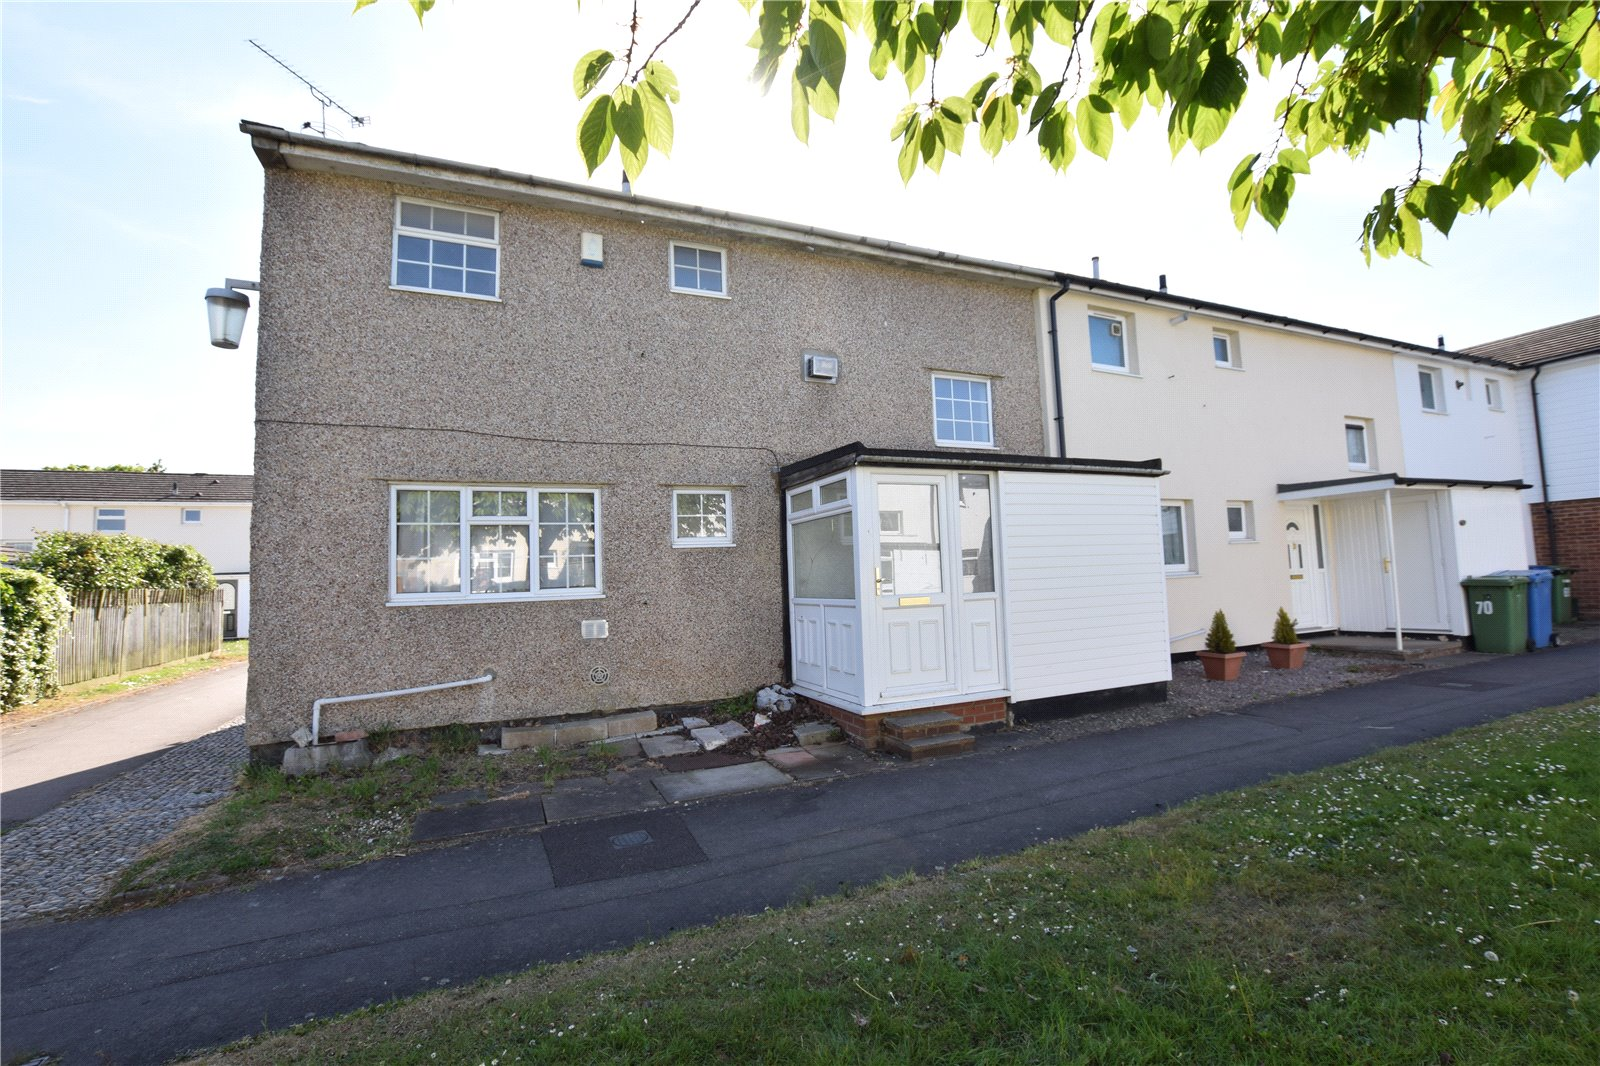 3 Bedrooms End Of Terrace House for sale in Abbotsbury, Bracknell, Berkshire, RG12